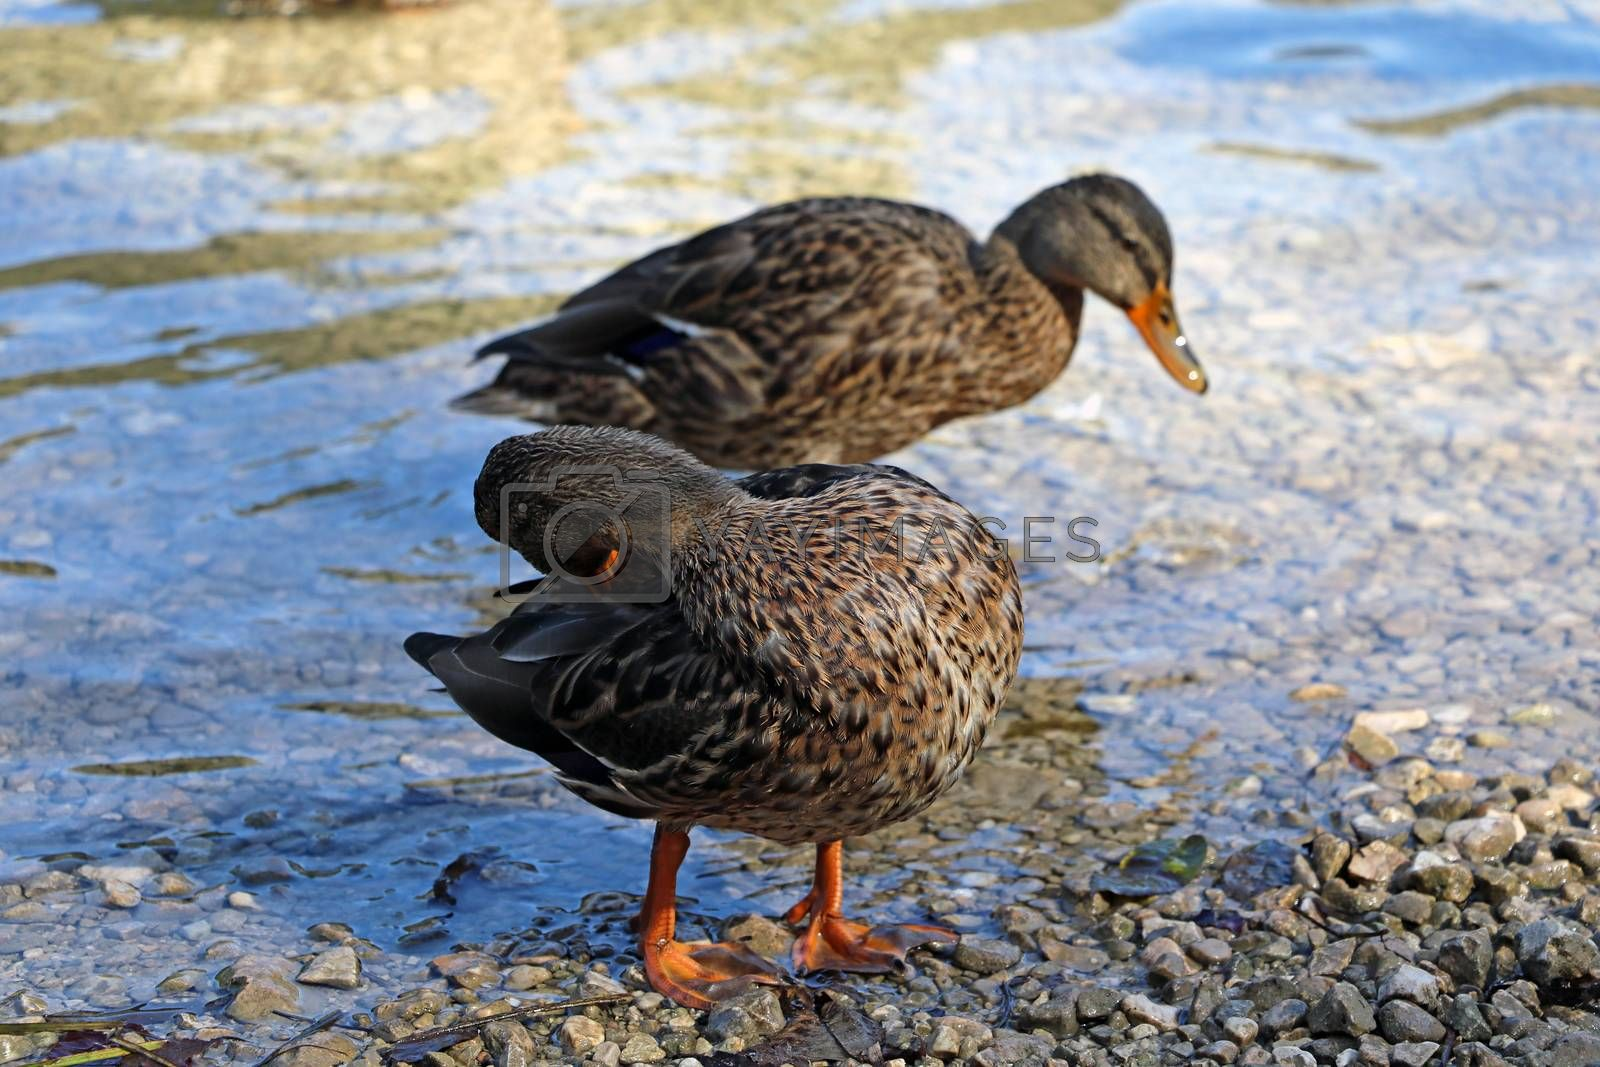 Ducks stand on the shore of the lake and wash. by kip02kas